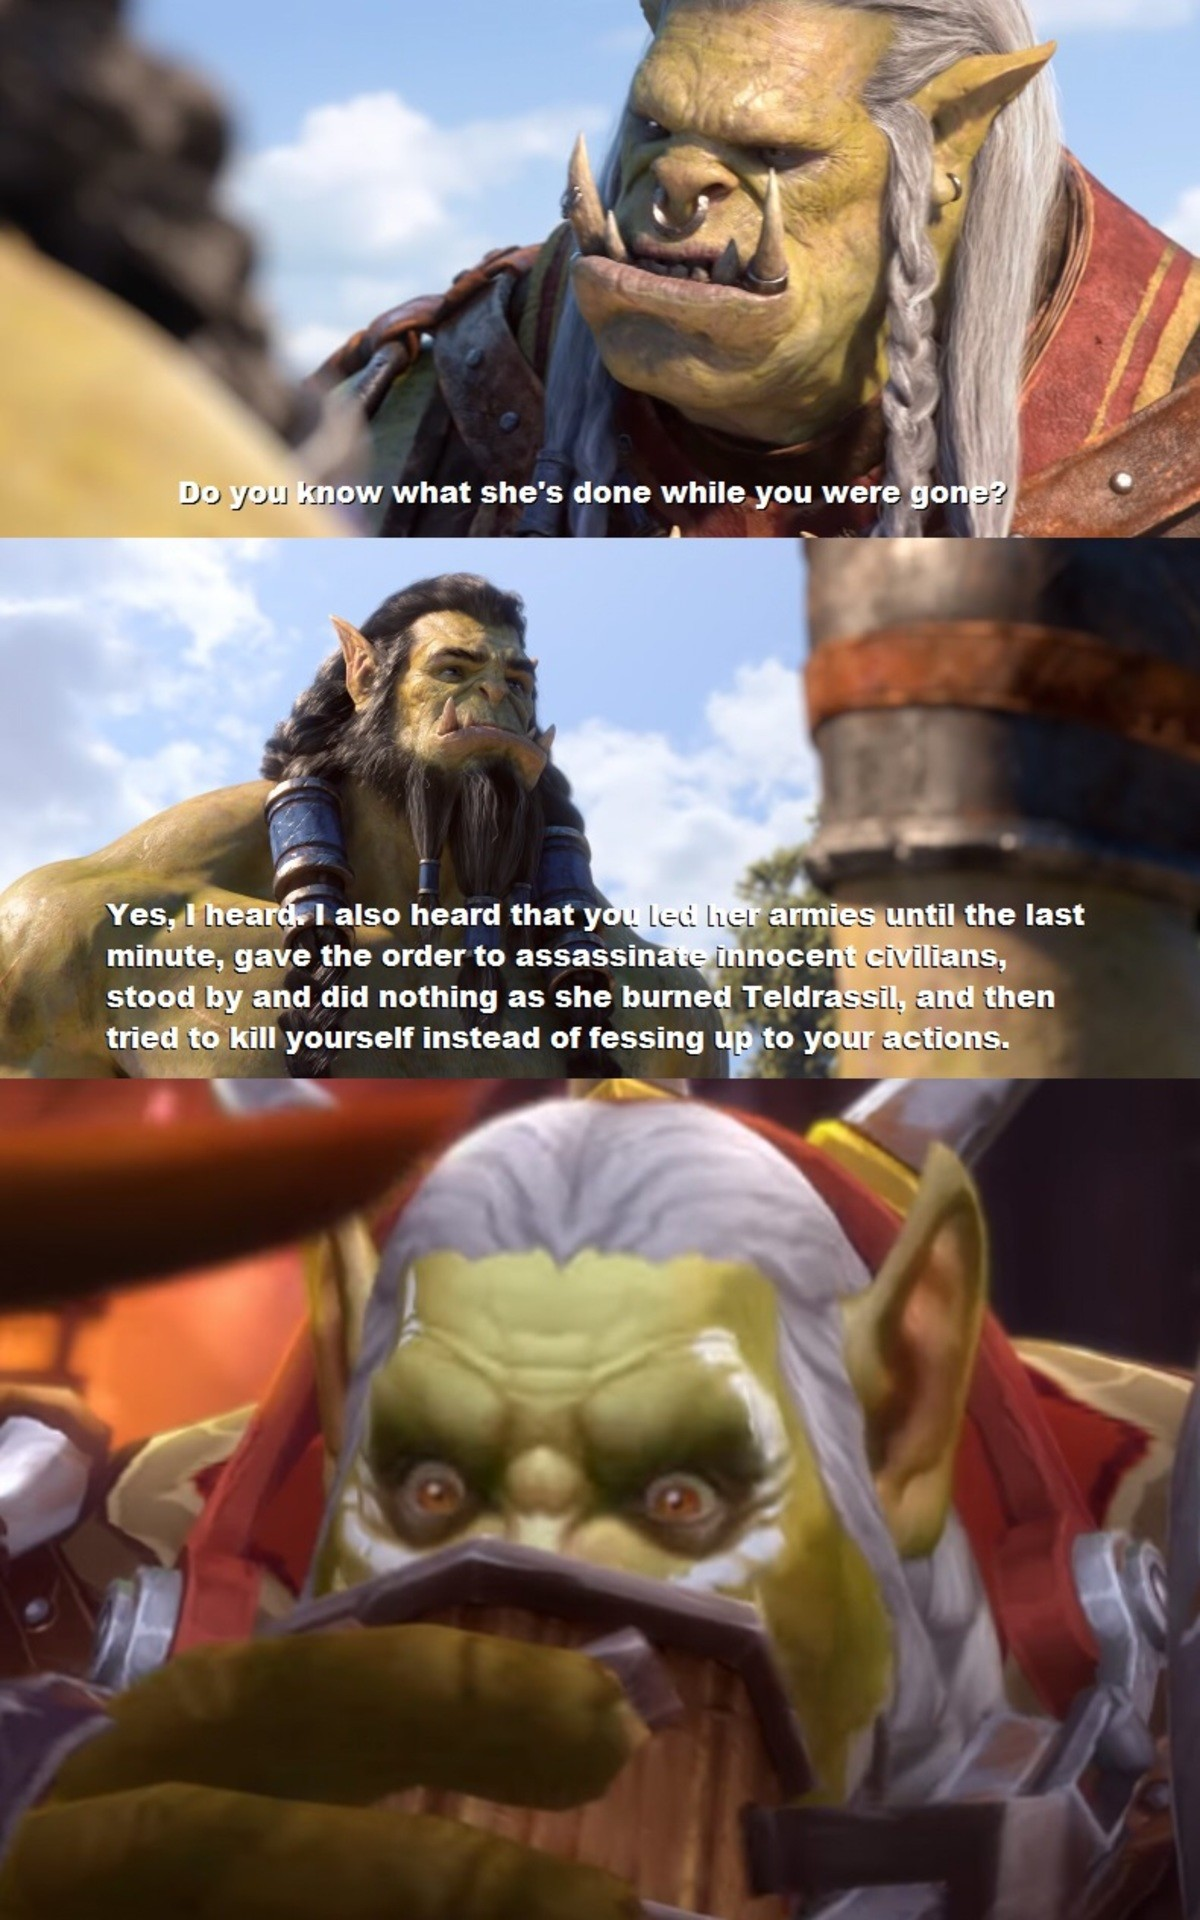 Story is a mess. .. Also giving Horde players the option to side with Sylvanas, only to be railroaded down the rebel quests anyway where Nathanos tells you to go along with sabotag